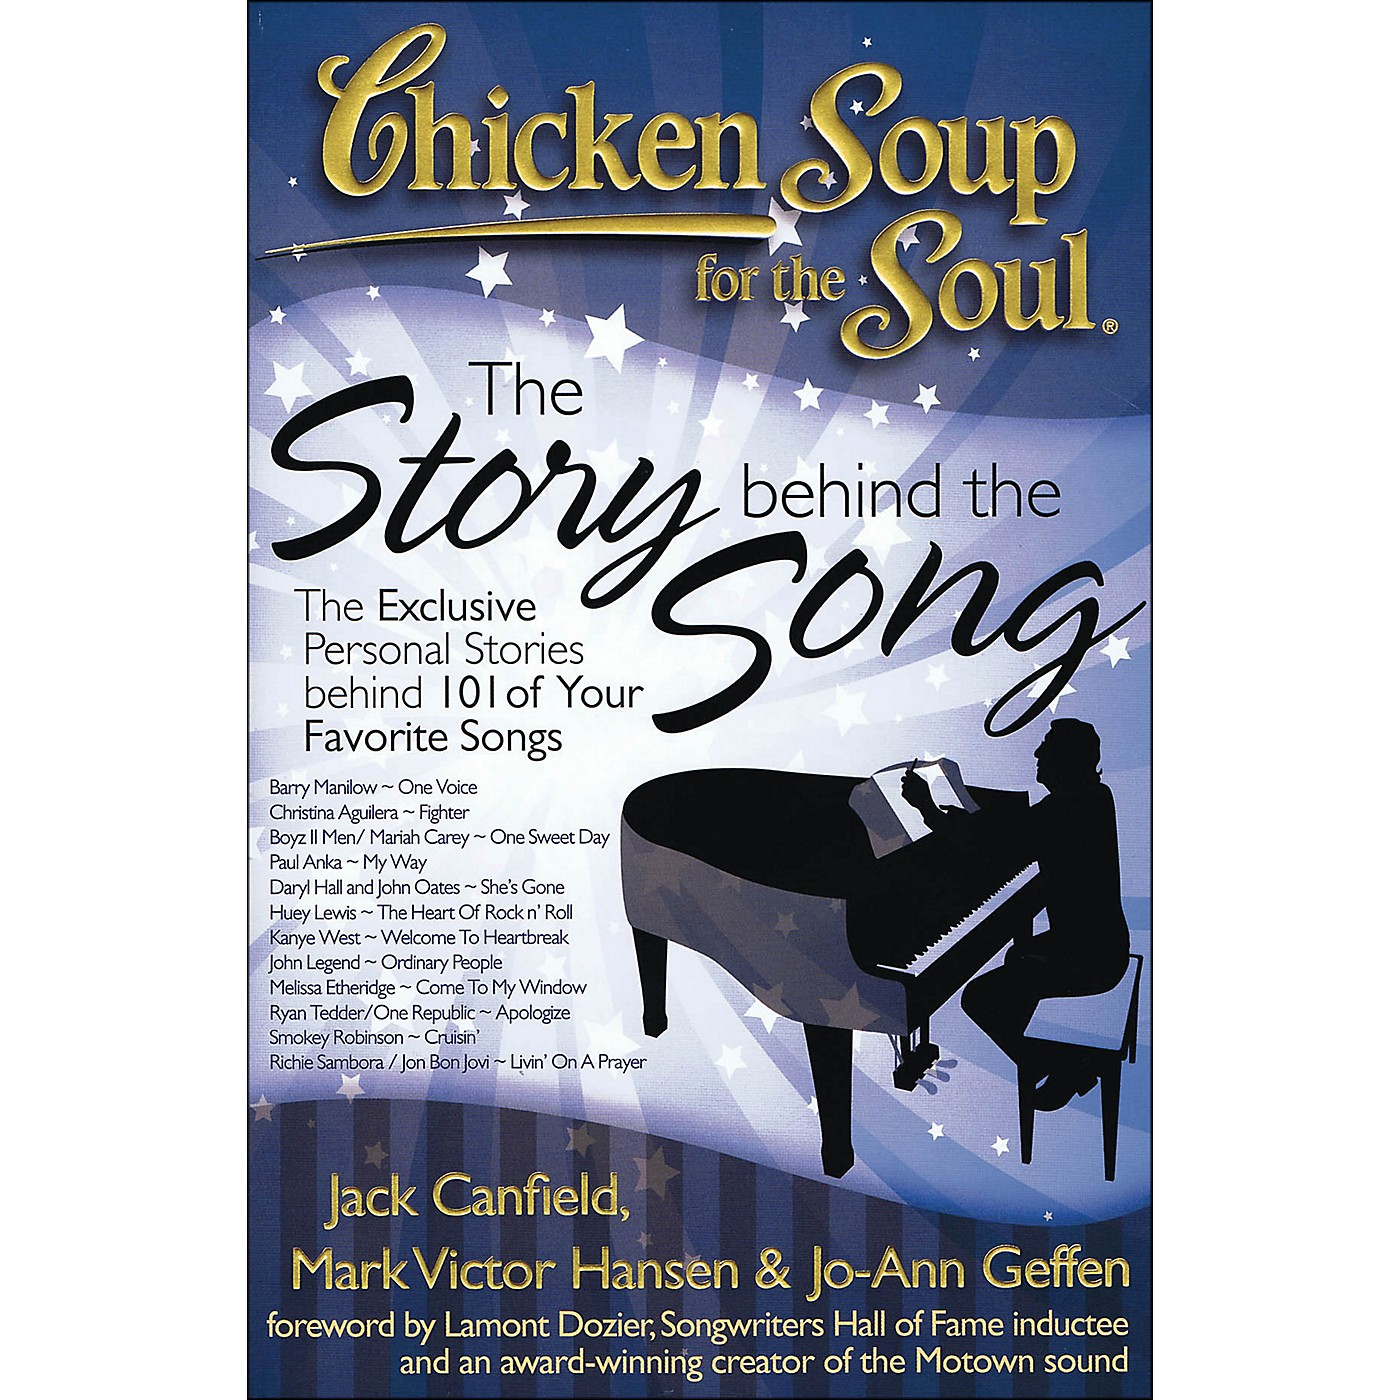 Hal Leonard Chicken Soup for The Soul - The Story Behind The Song thumbnail